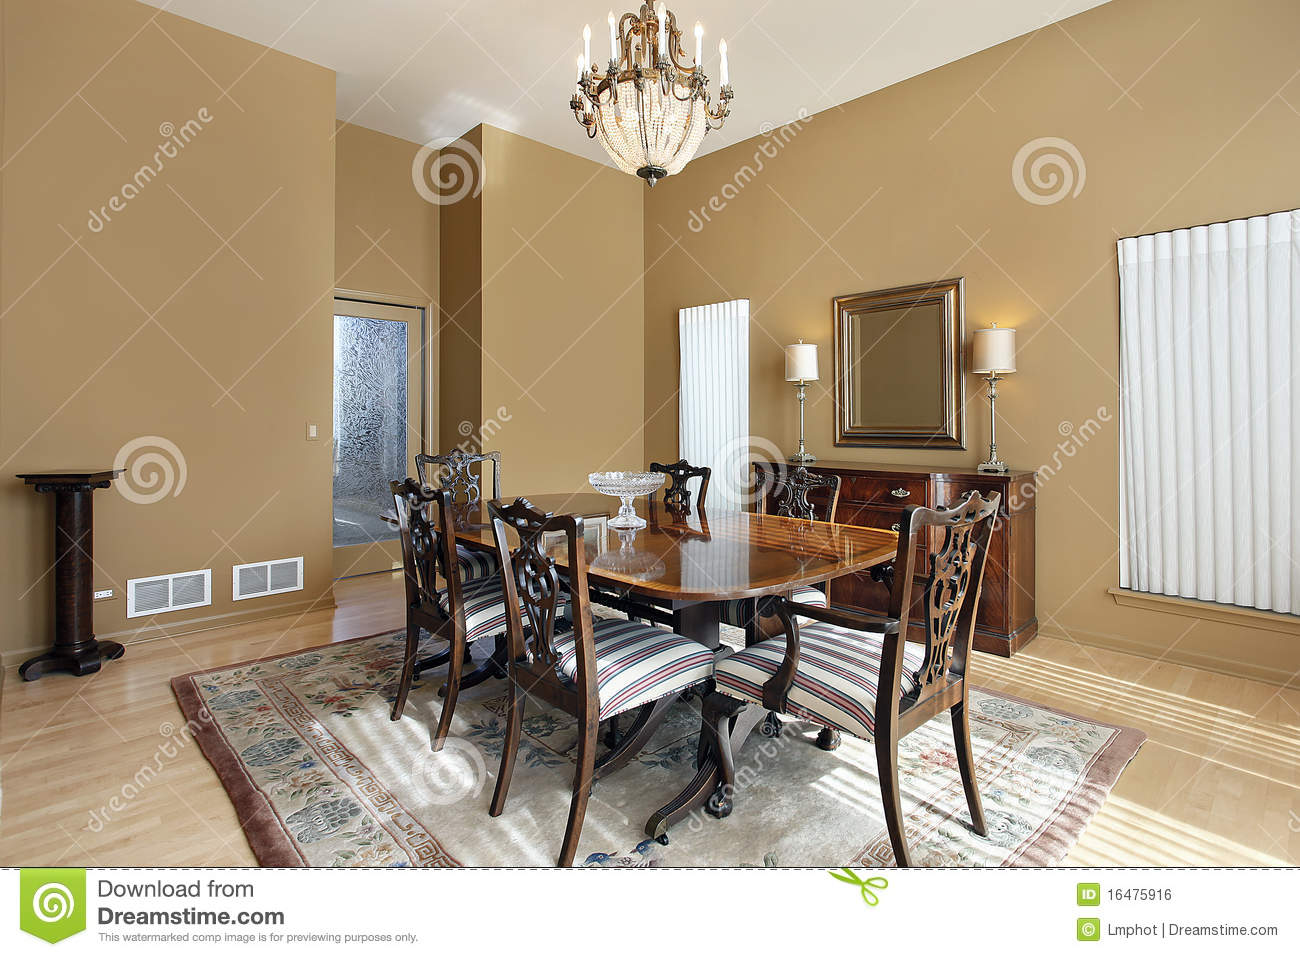 Dining Room With Tan Walls Stock Photo Image Of Interior